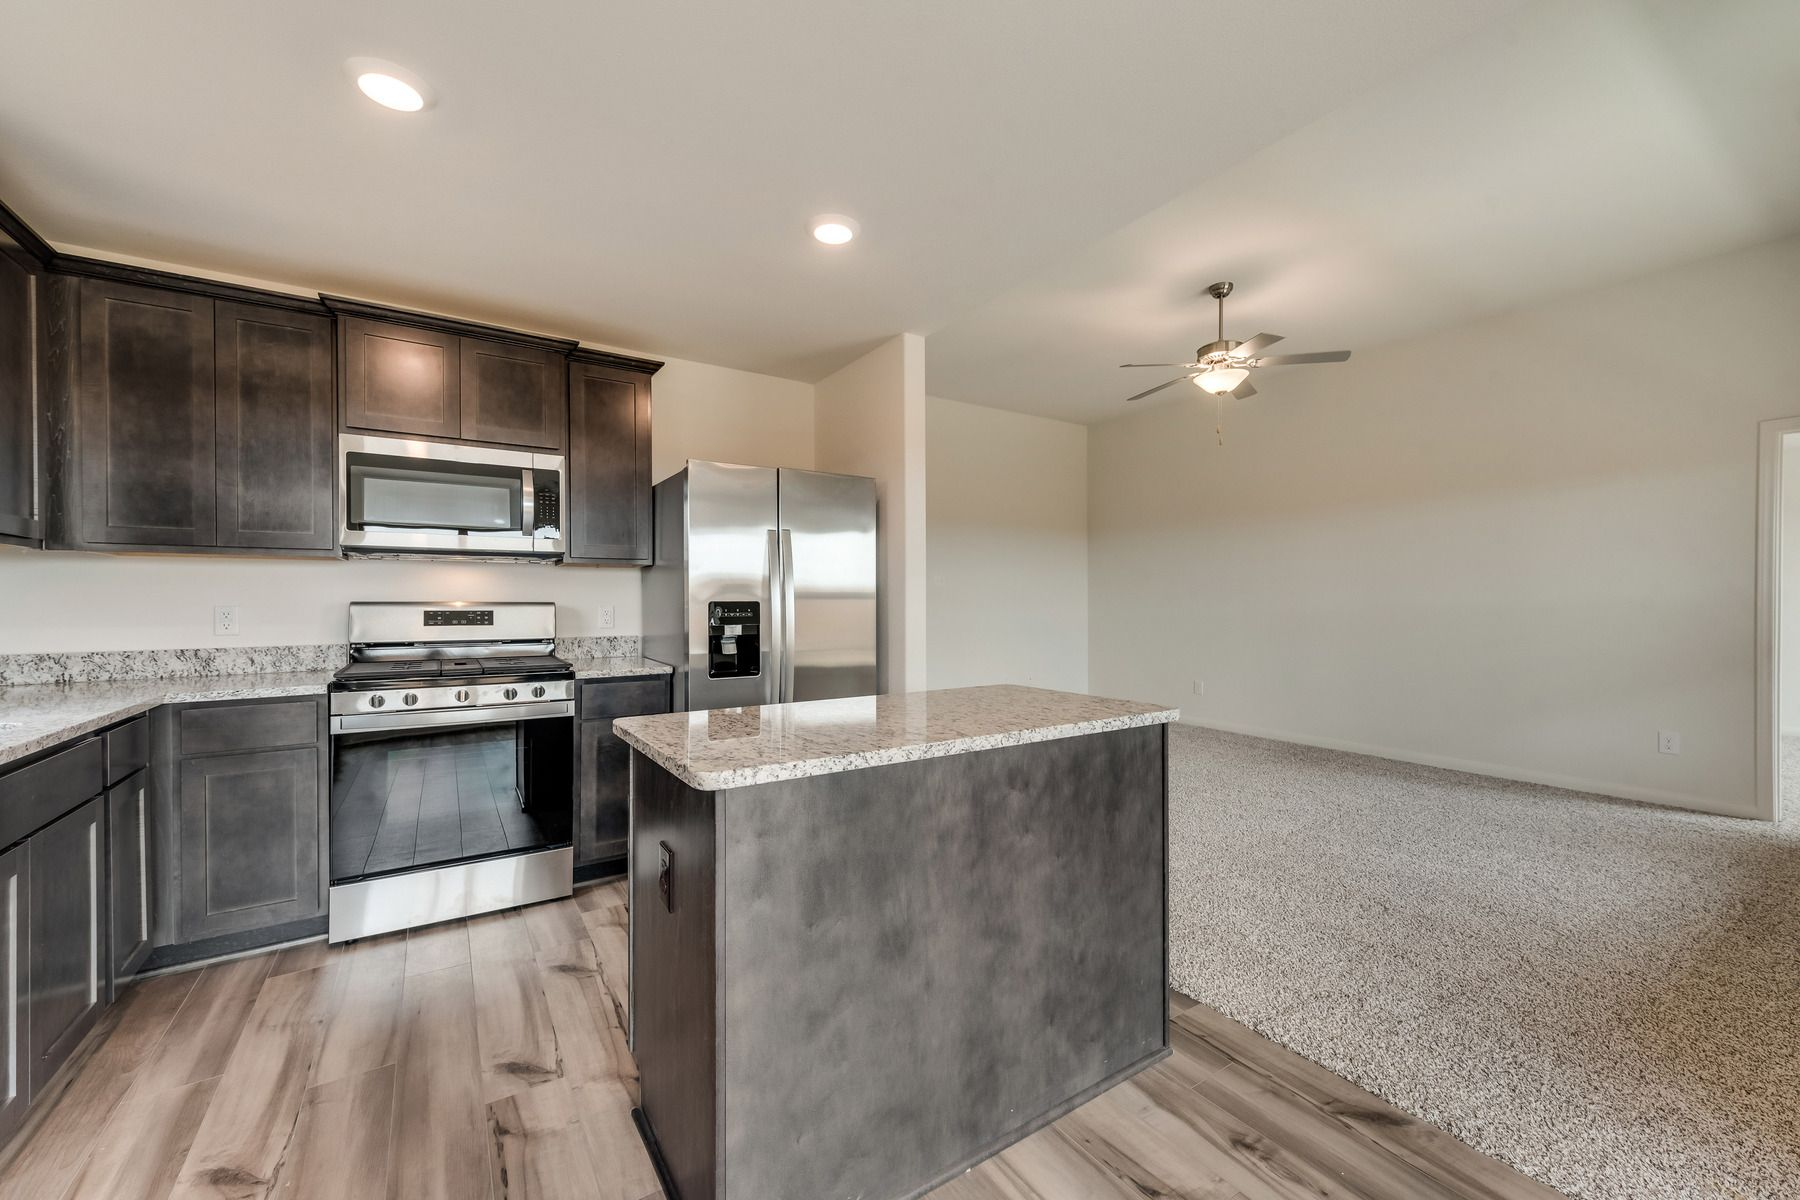 The Blanco by LGI Homes:Enjoy stunning granite countertops and designer wood cabinetry in this kitchen.